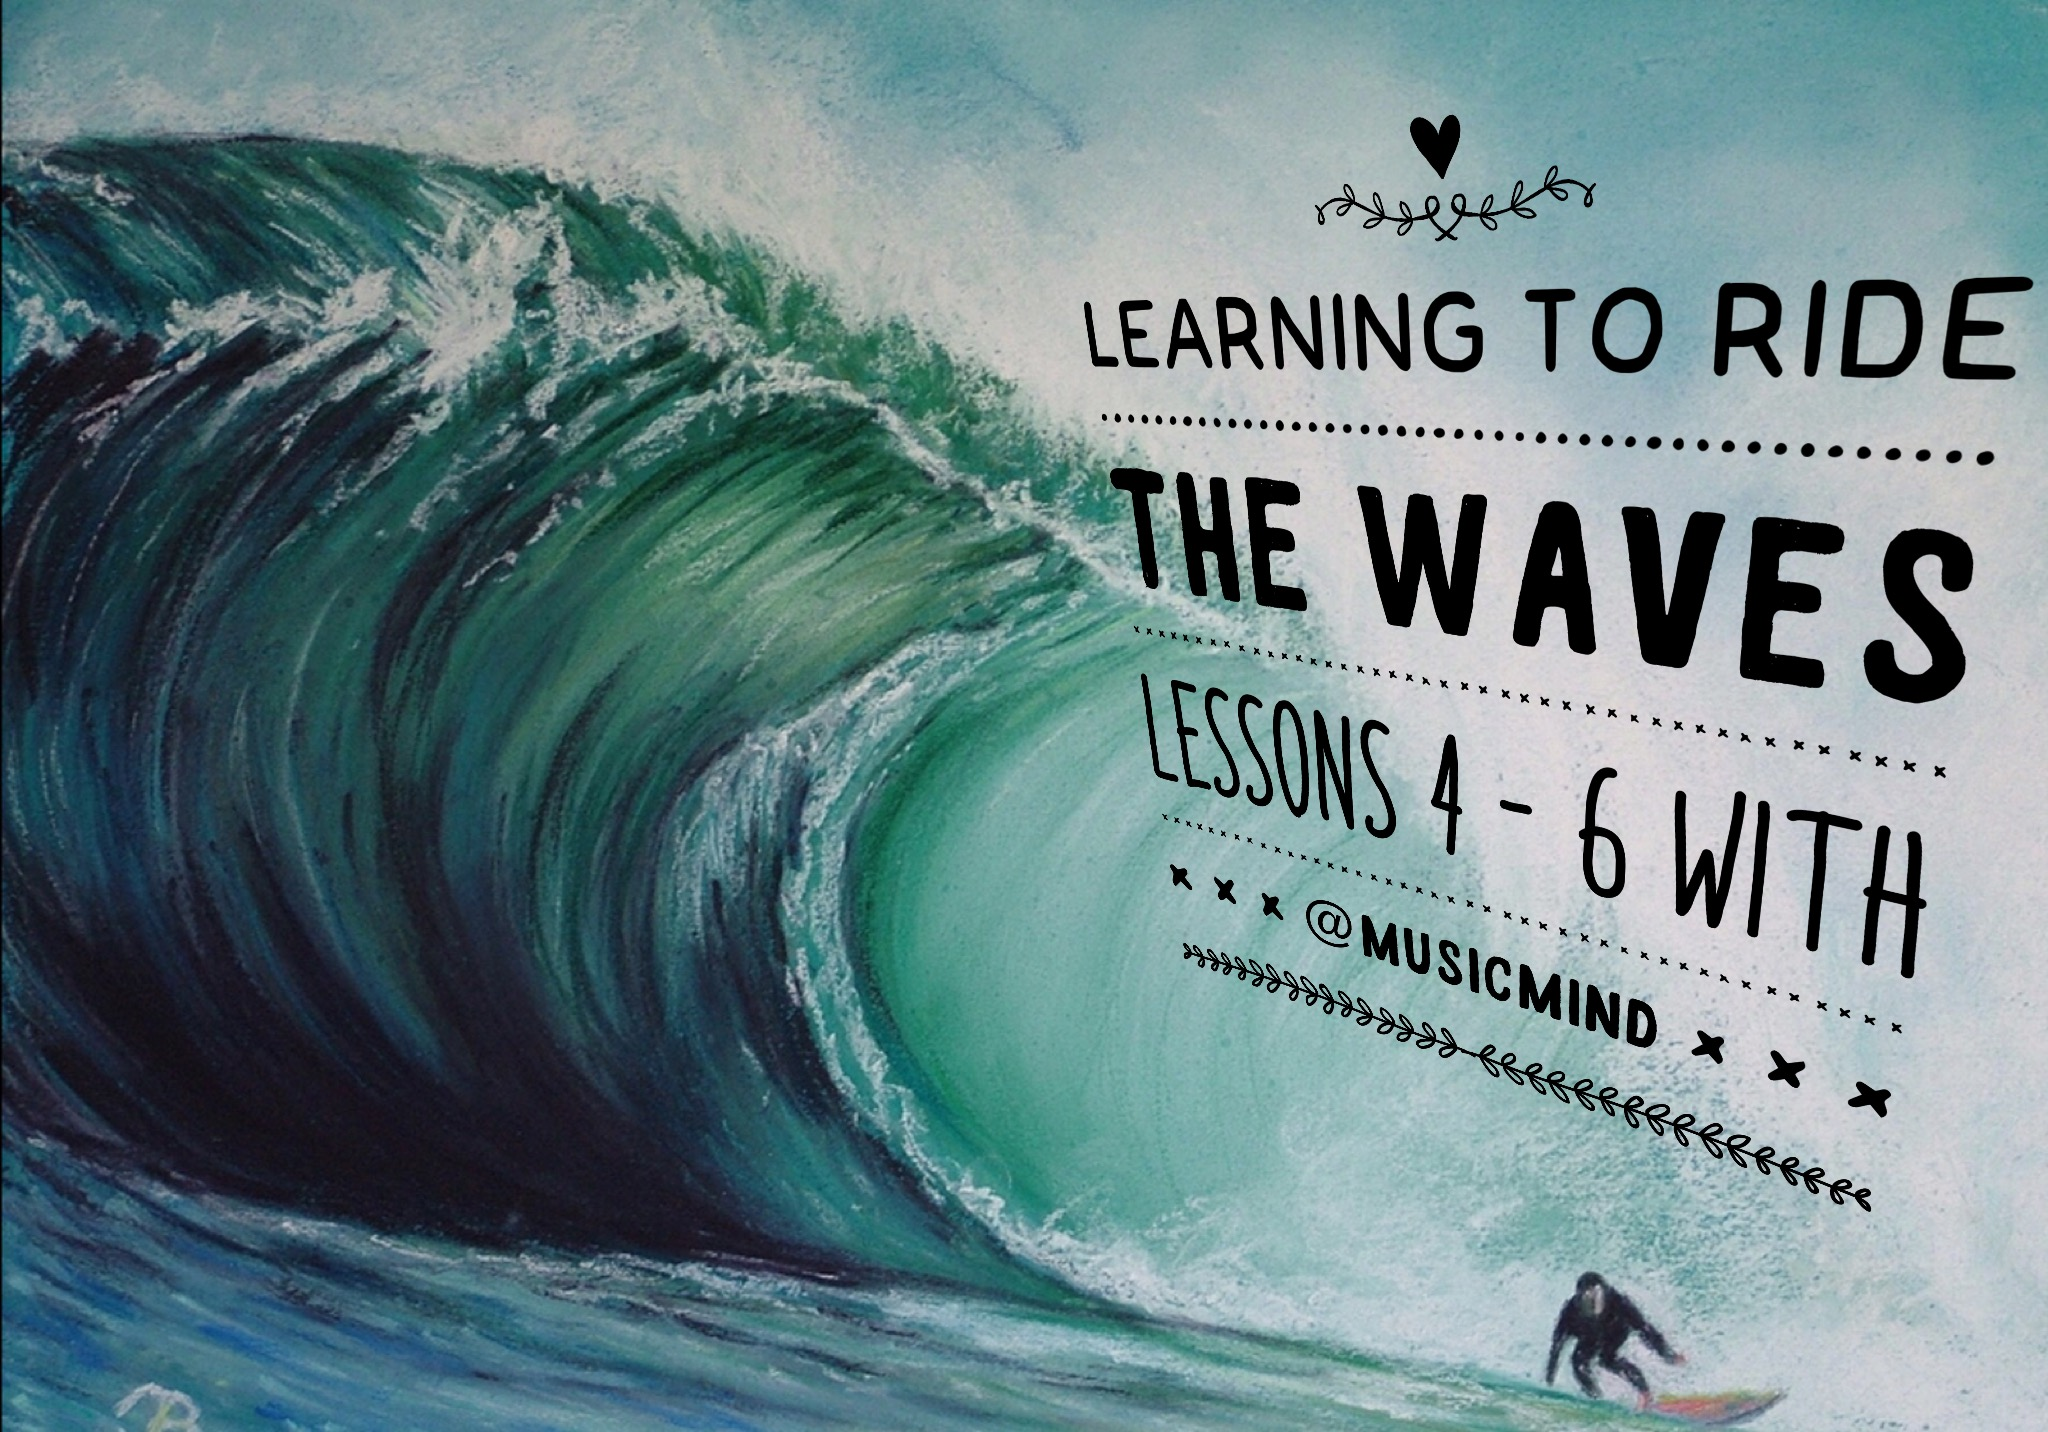 Learning to ride the waves – Lessons 4 – 6